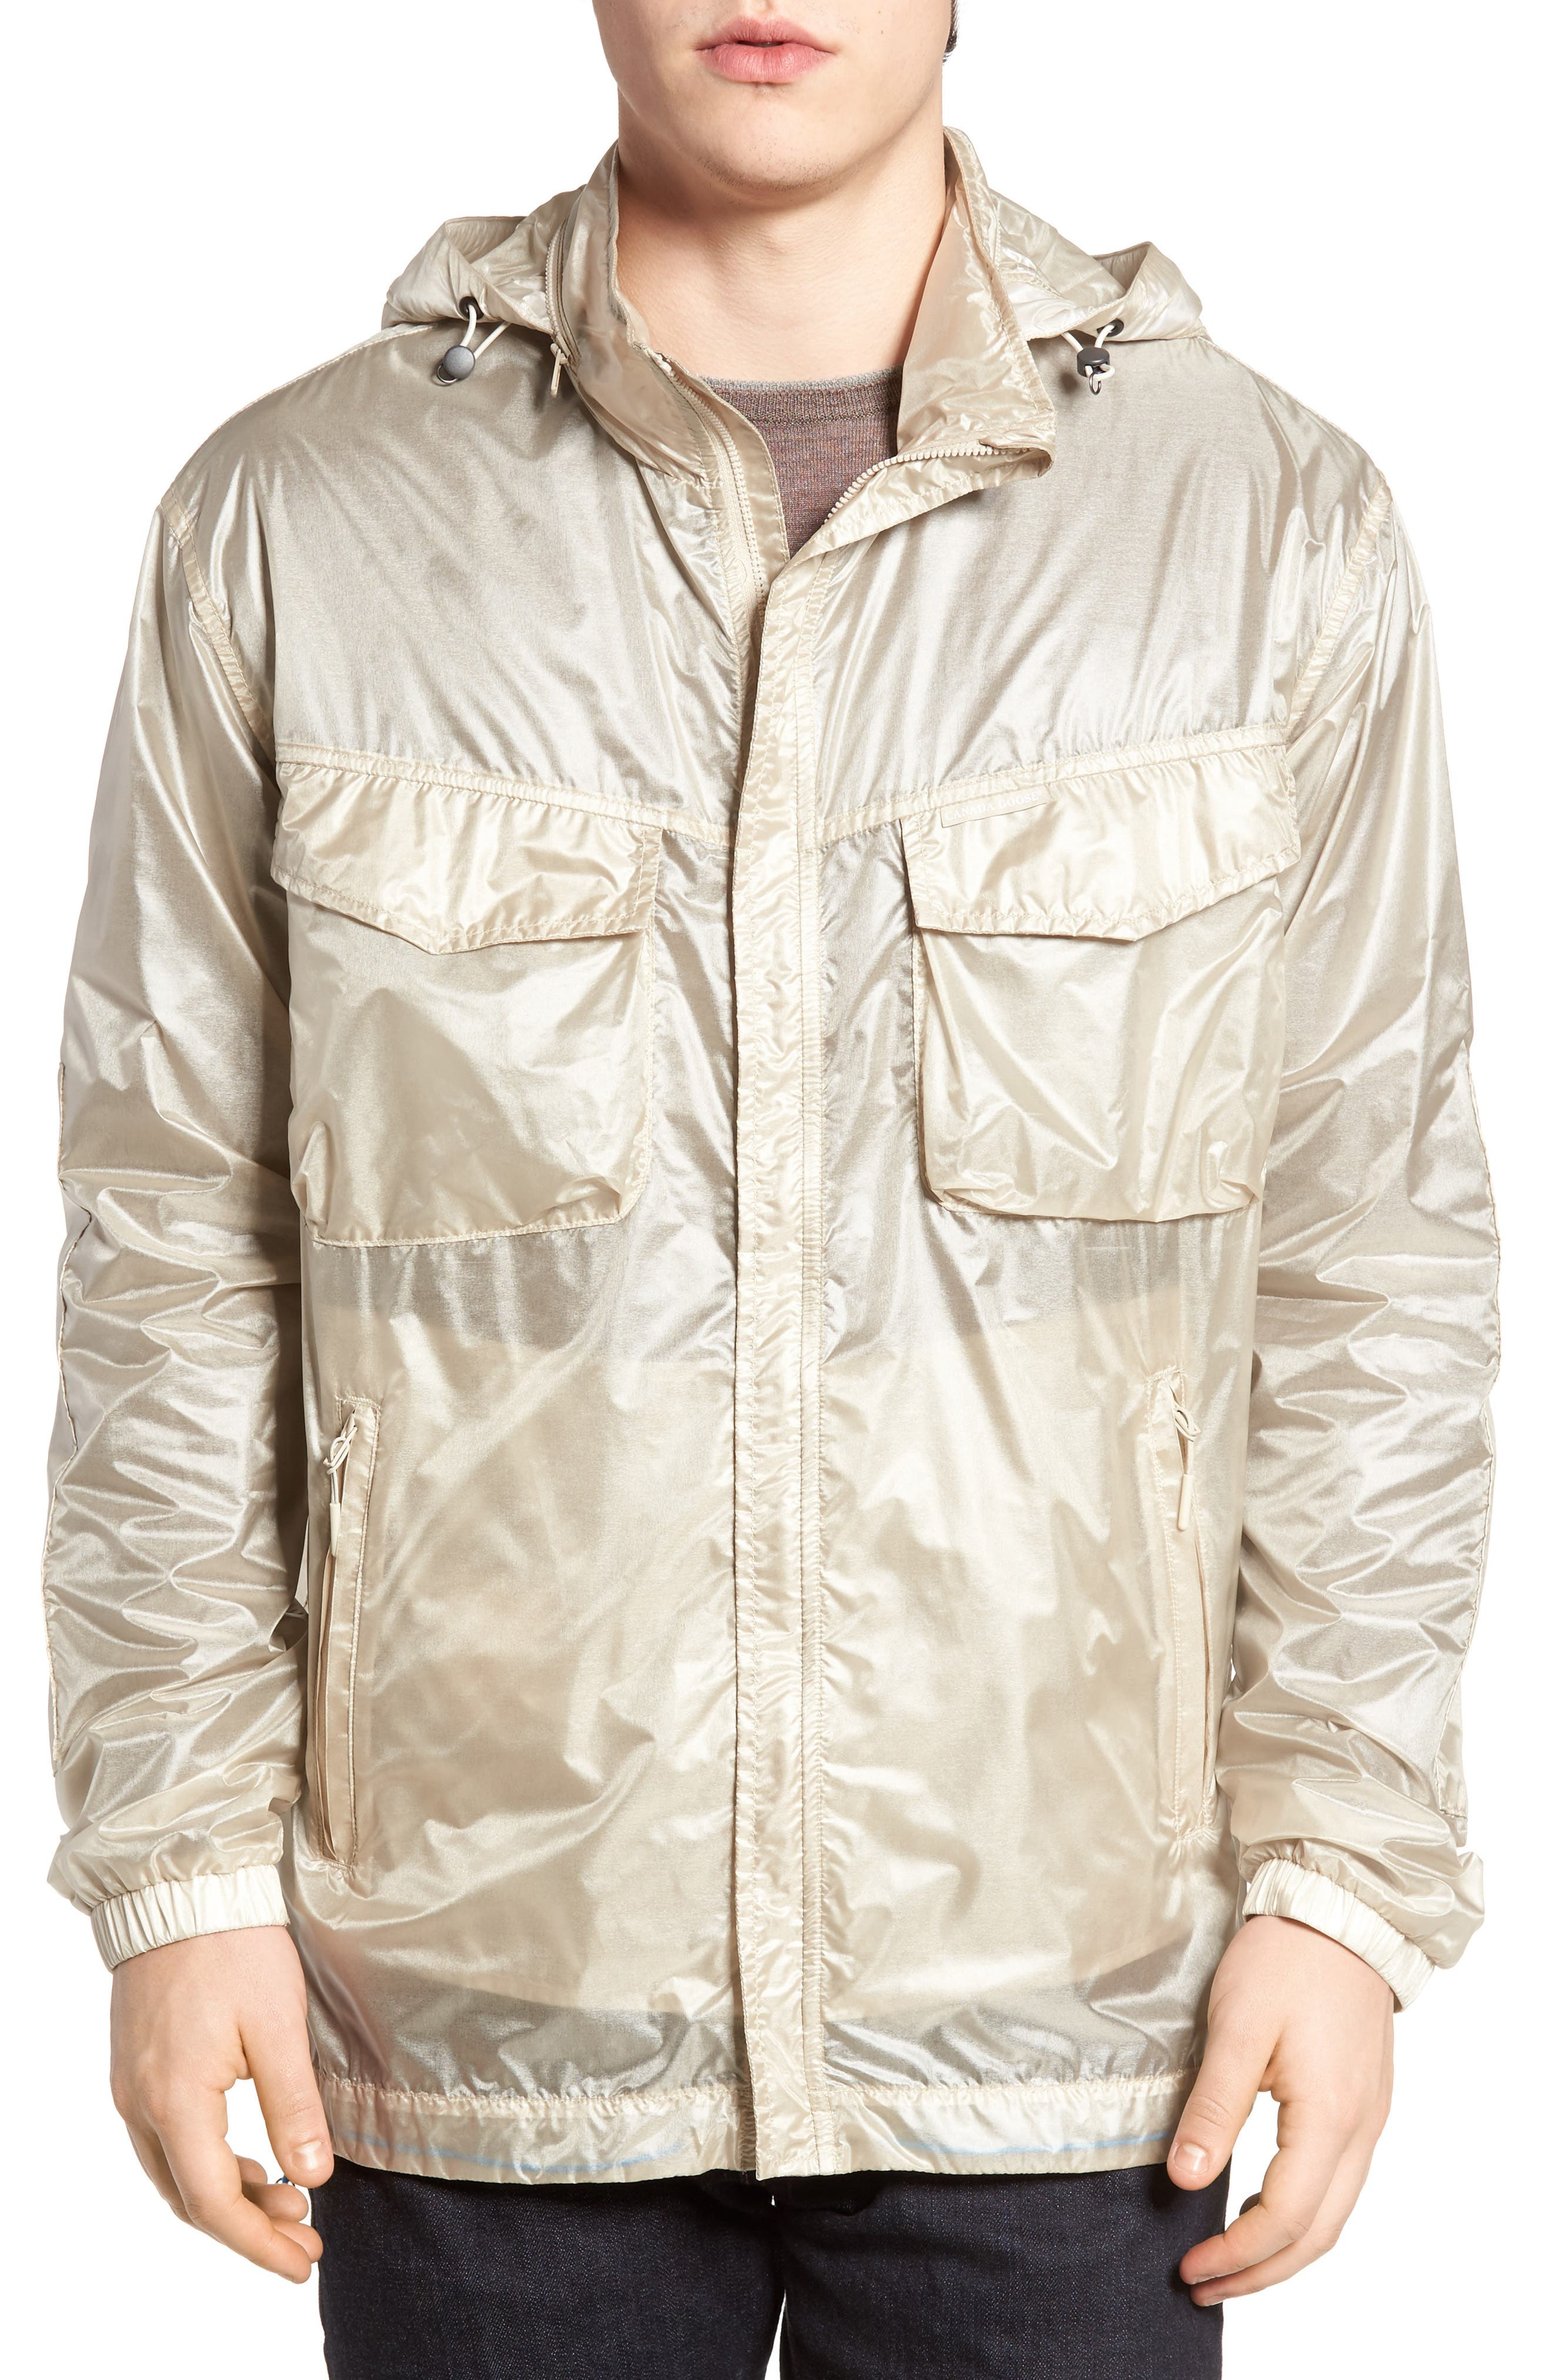 8a5739a47 windbreakers | Nordstrom